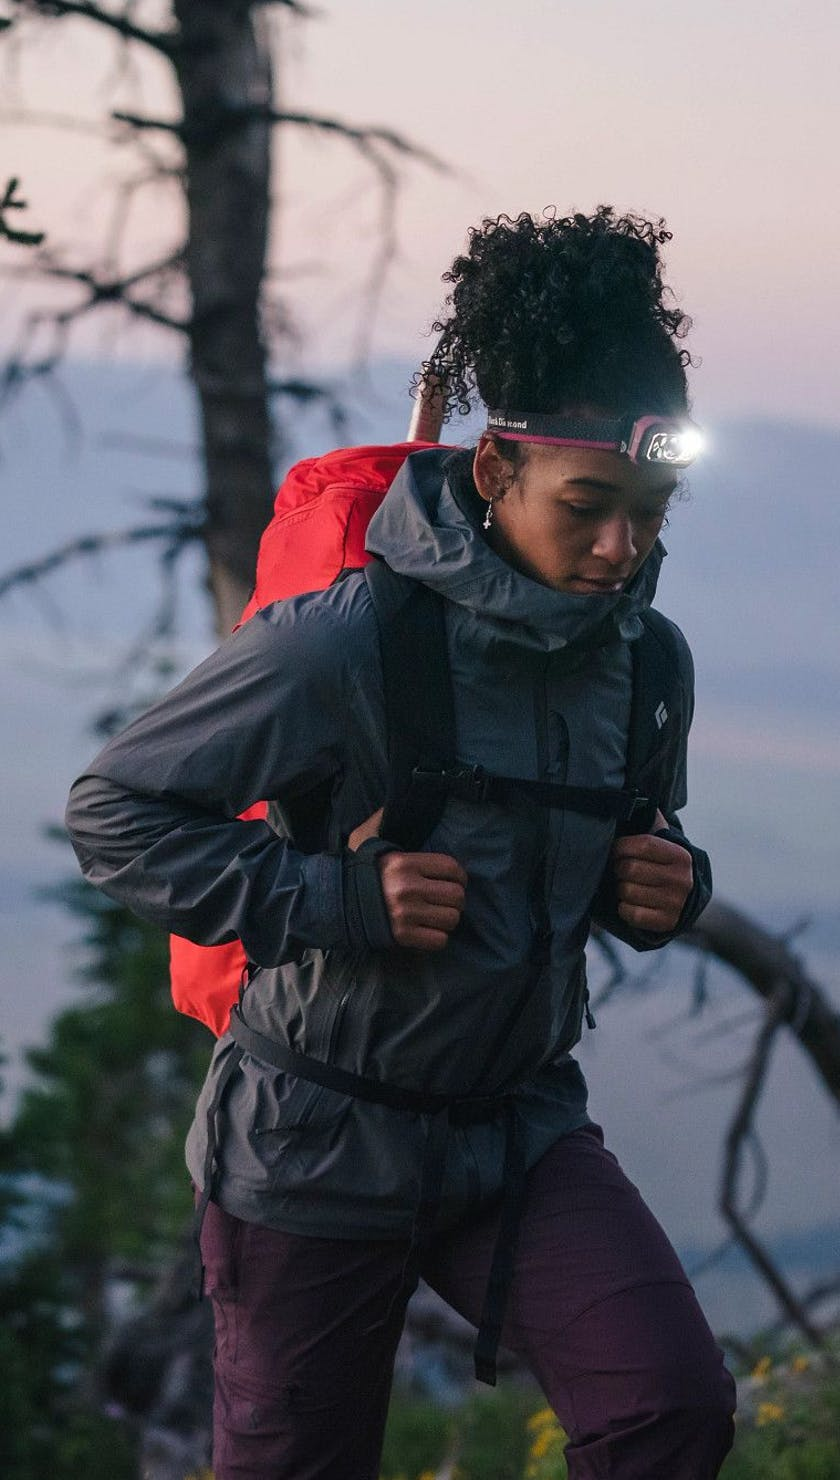 Woman out for a hike at dusk using the Storm 400 Headlamp